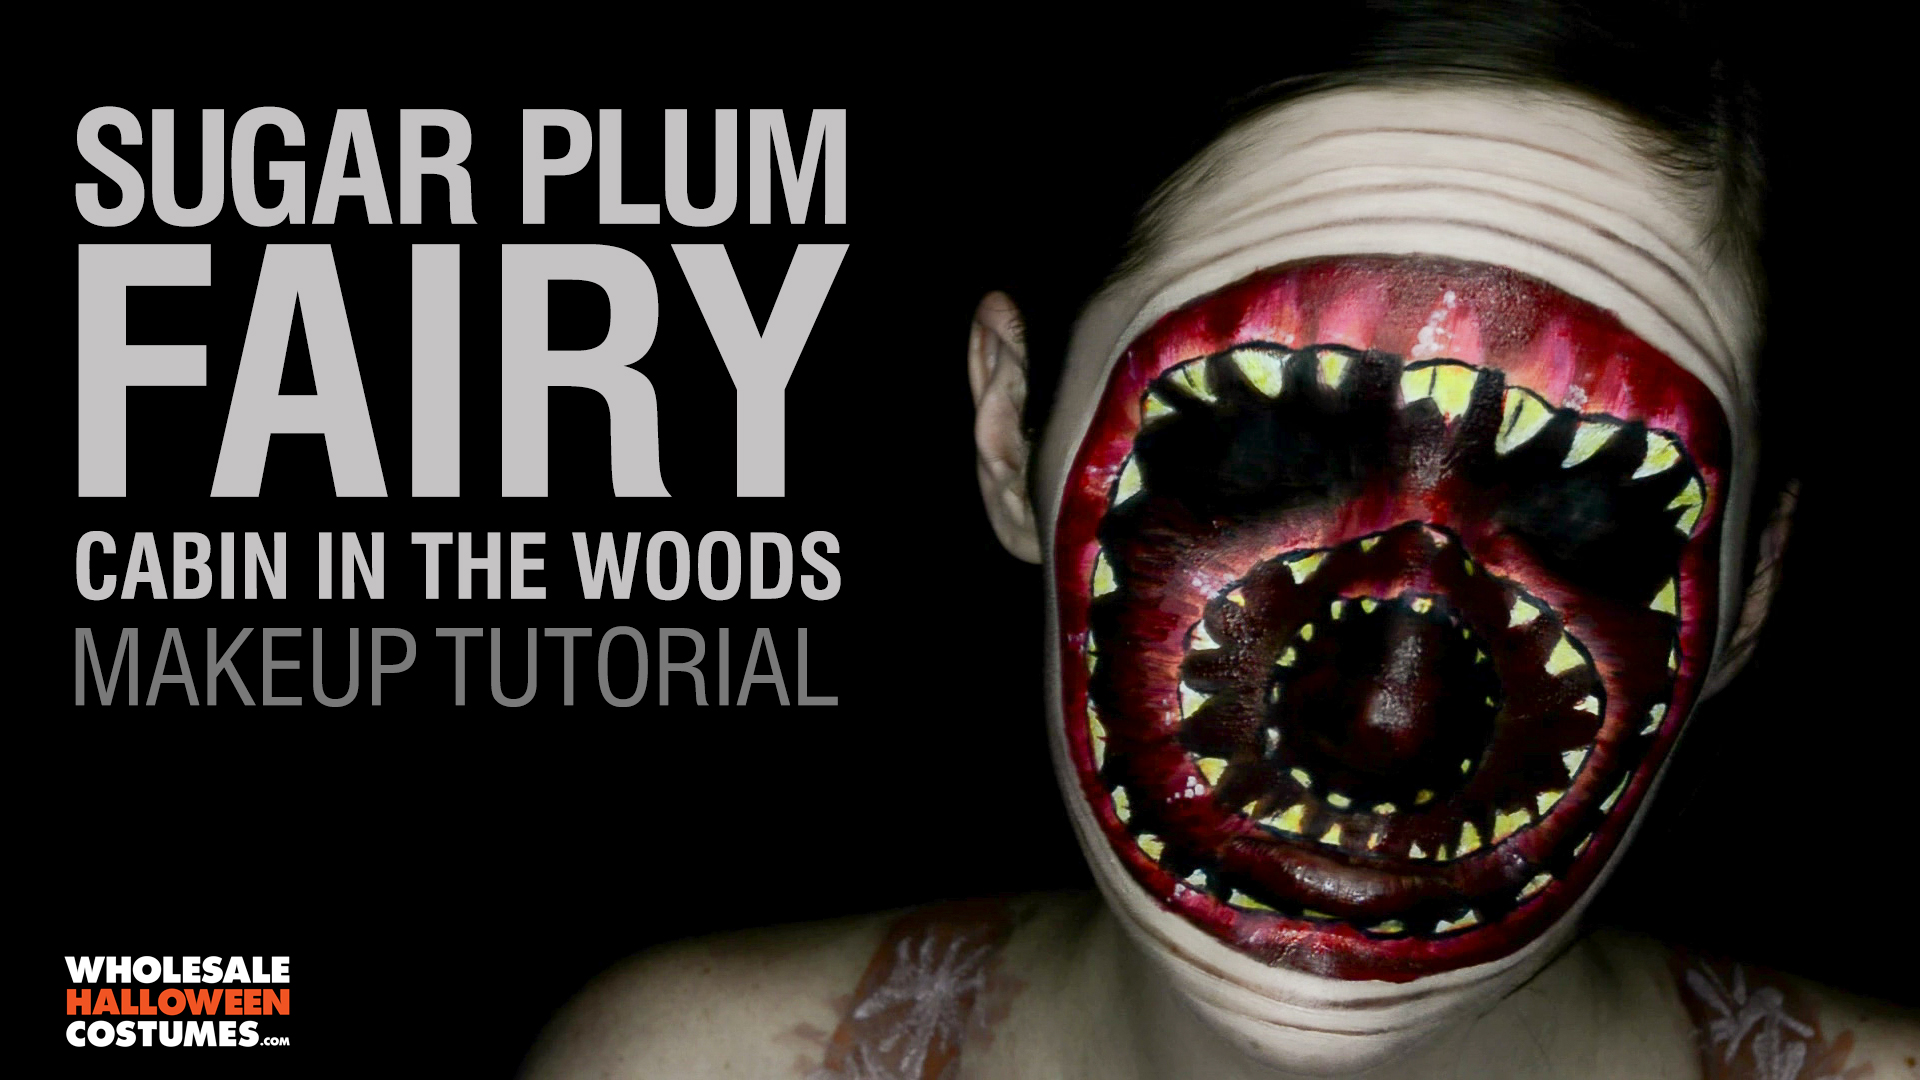 Cabin in the woods sugar plum fairy makeup tutorial wholesale cabin in the woods sugar plum fairy makeup tutorial wholesale halloween costumes blog baditri Images